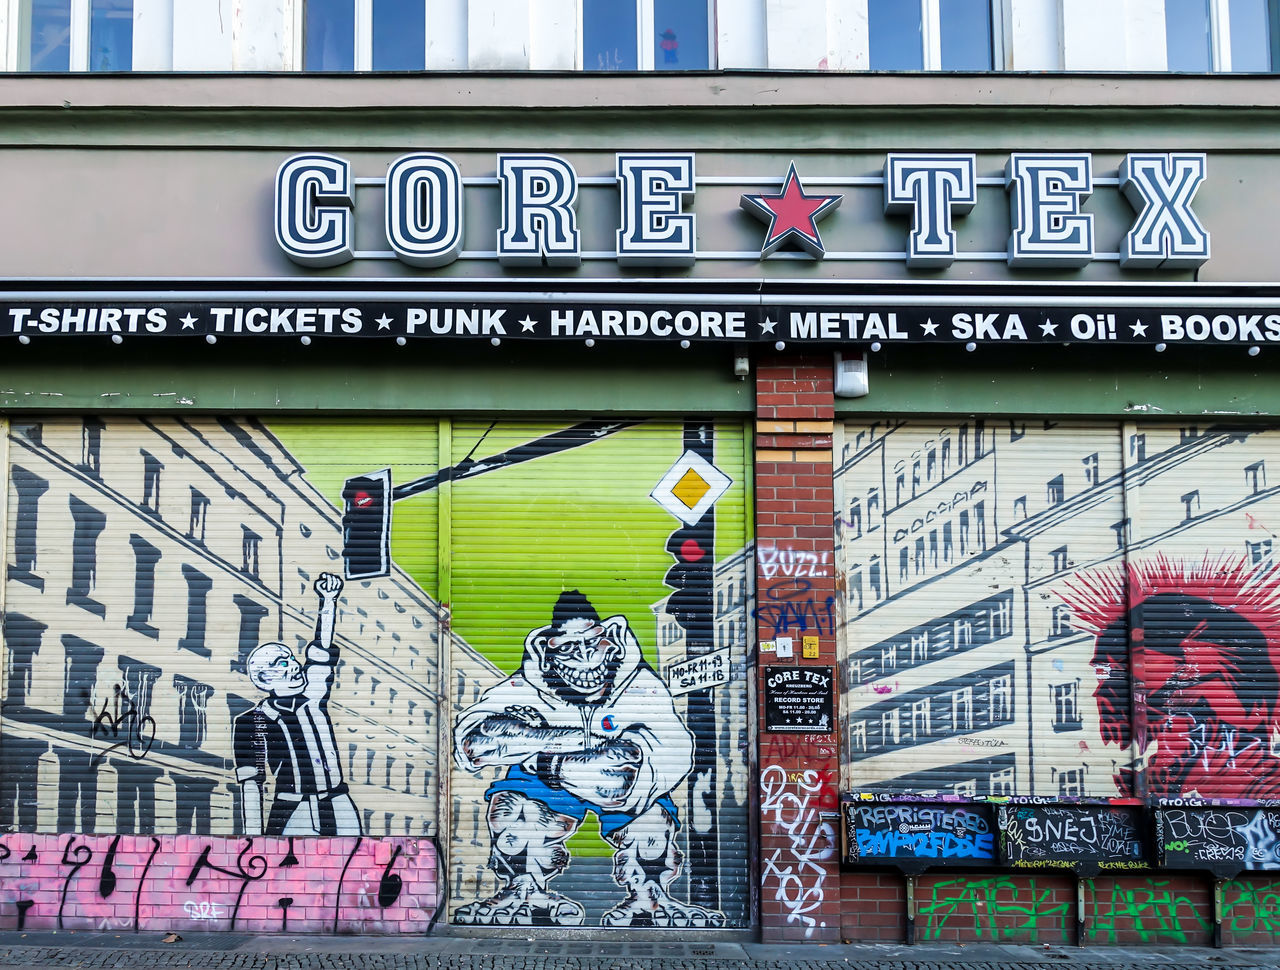 Architecture Art Art, Drawing, Creativity Berlin Mitte Berliner Ansichten Building Exterior Built Structure City Cityscape Downtown District Graffiti Graffiti Art Multi Colored No People Outdoors Shopfront Shopping Urban Urban Skyline